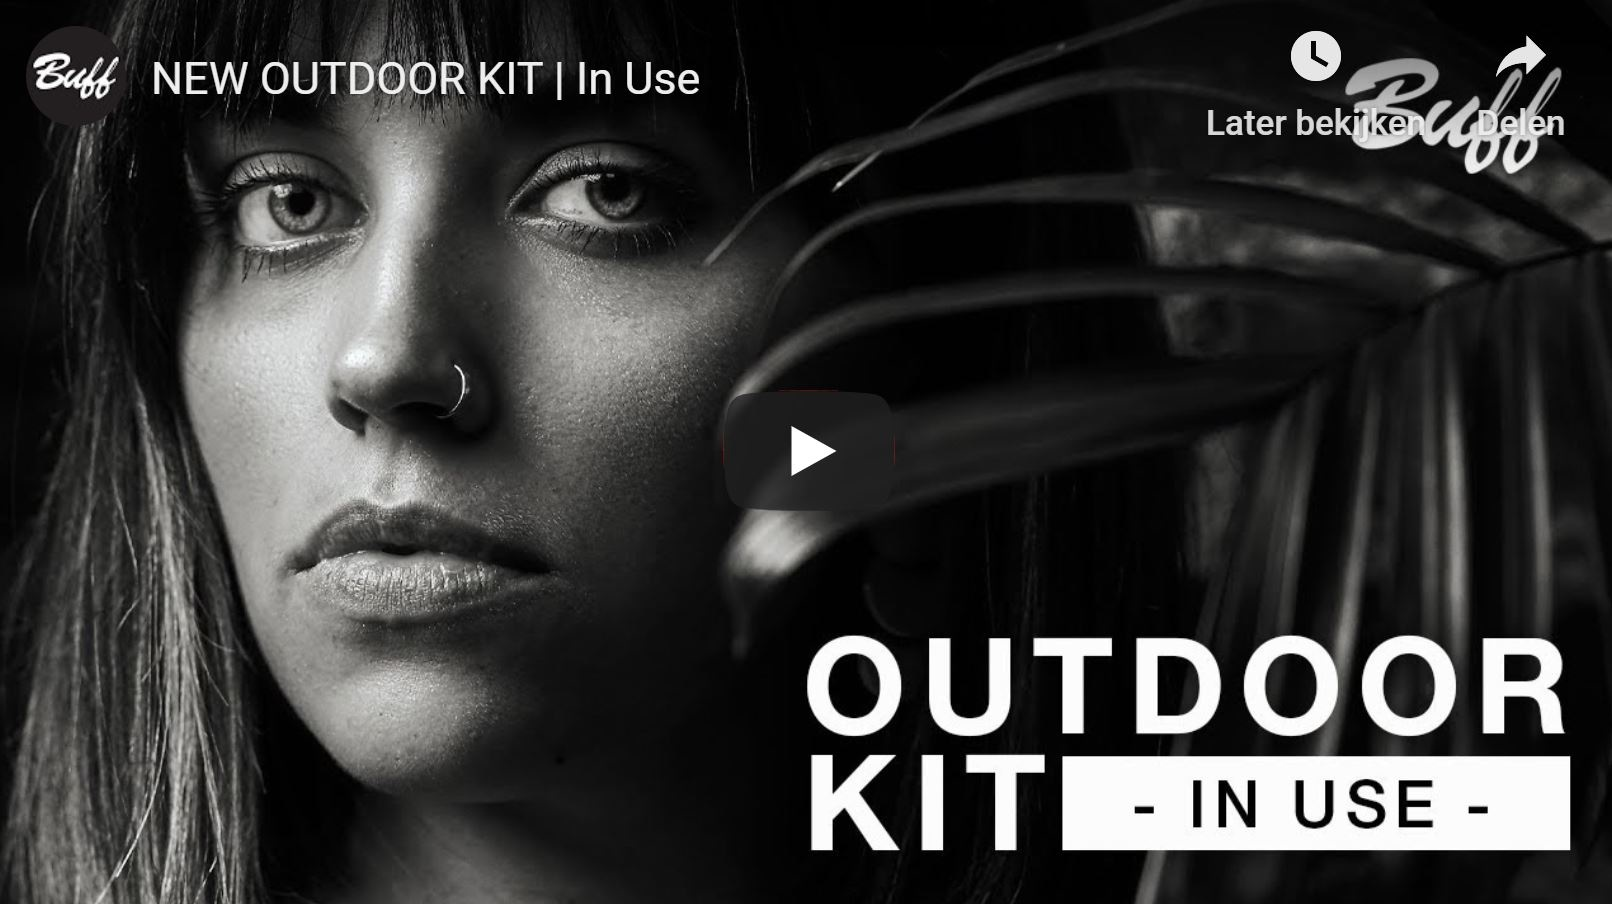 NEW OUTDOOR KIT | In Use